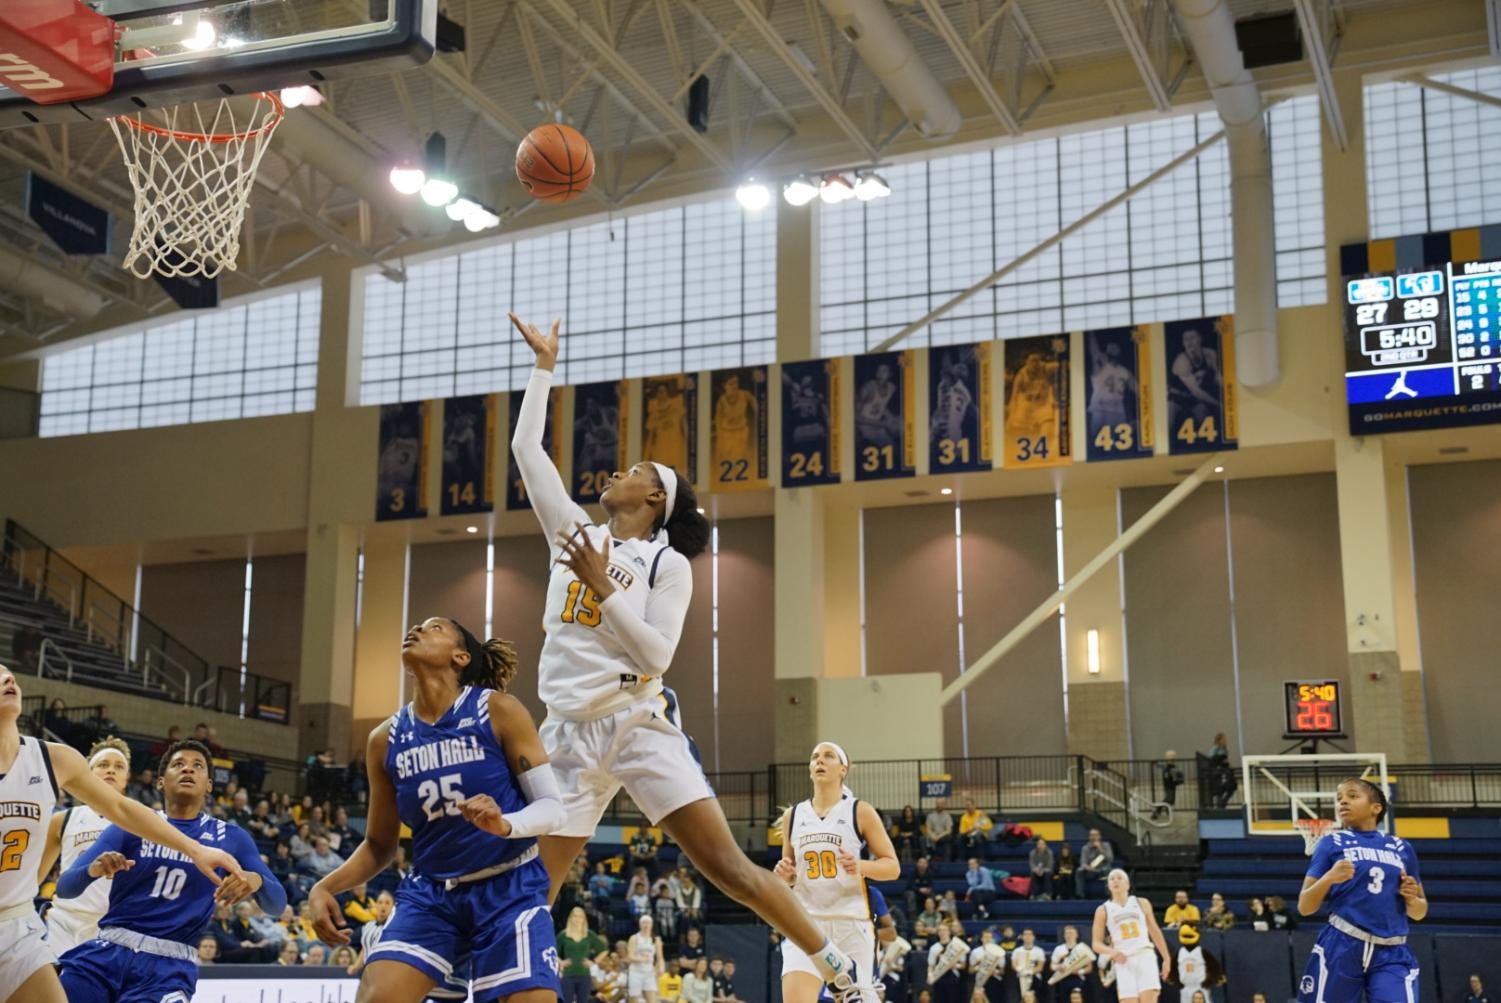 Camryn Taylor (15) contributed a career-high 23 points in Marquette's win over Seton Hall Sunday.